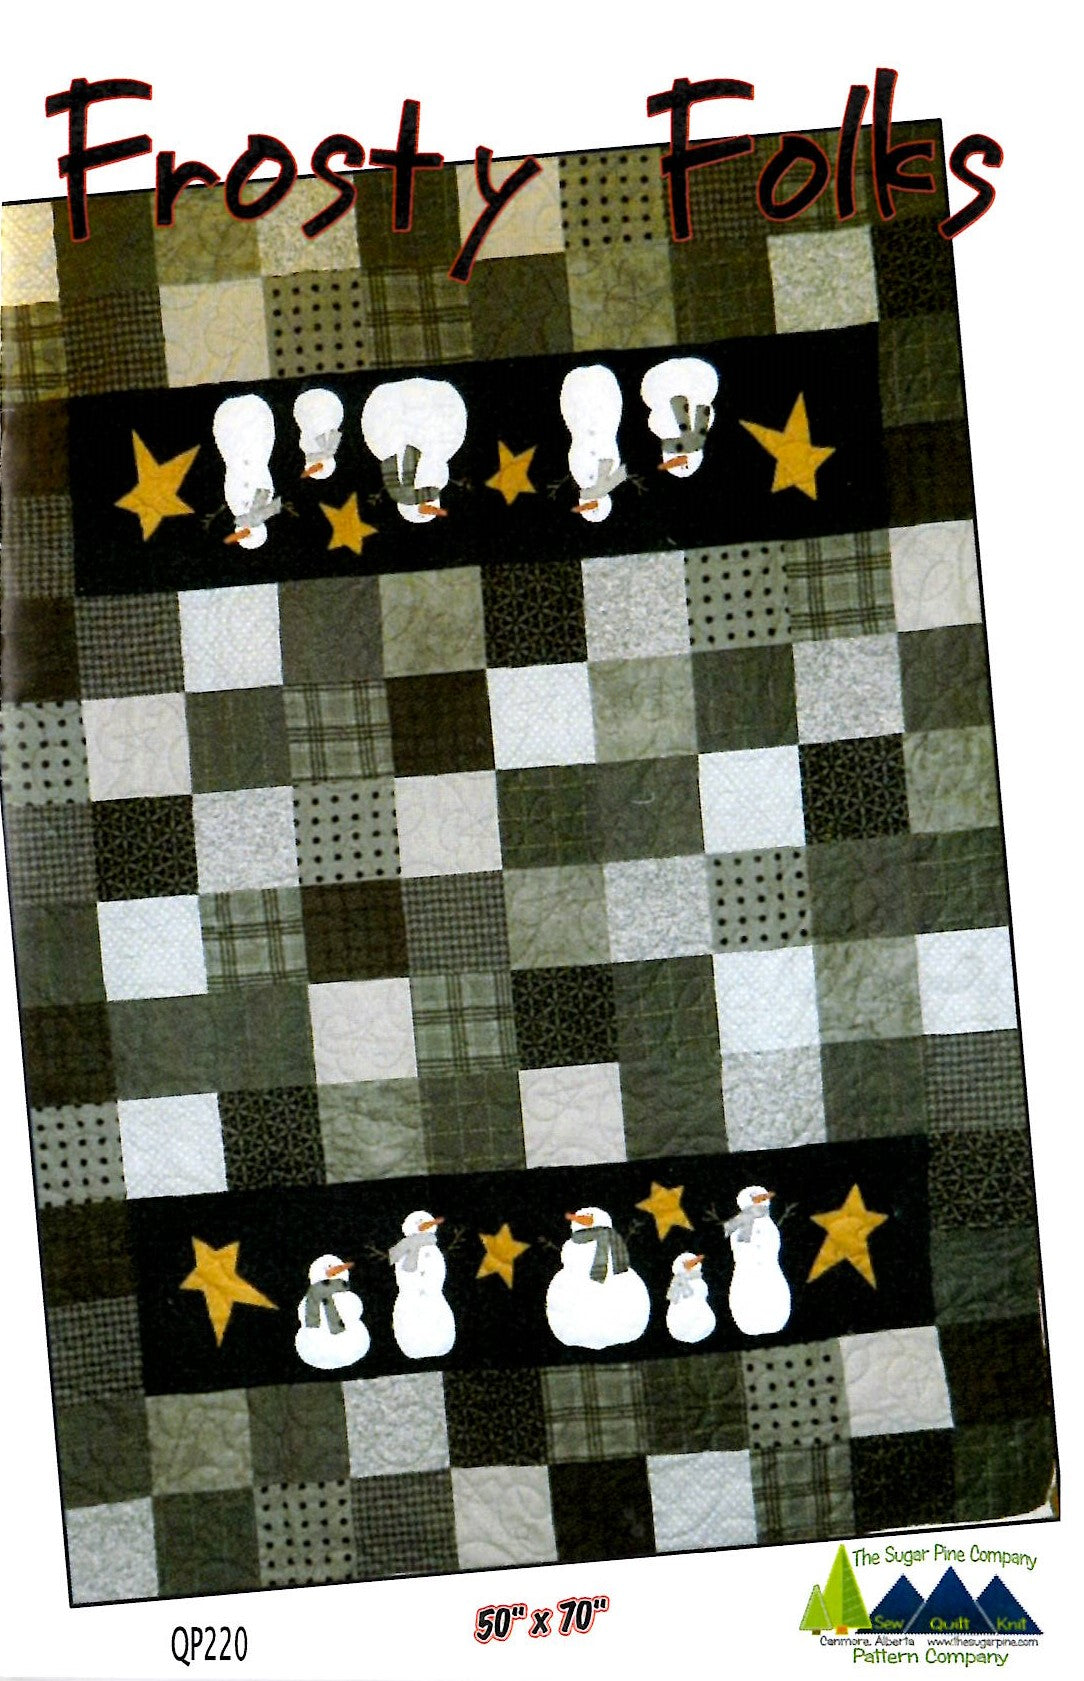 Frosty Folks pattern